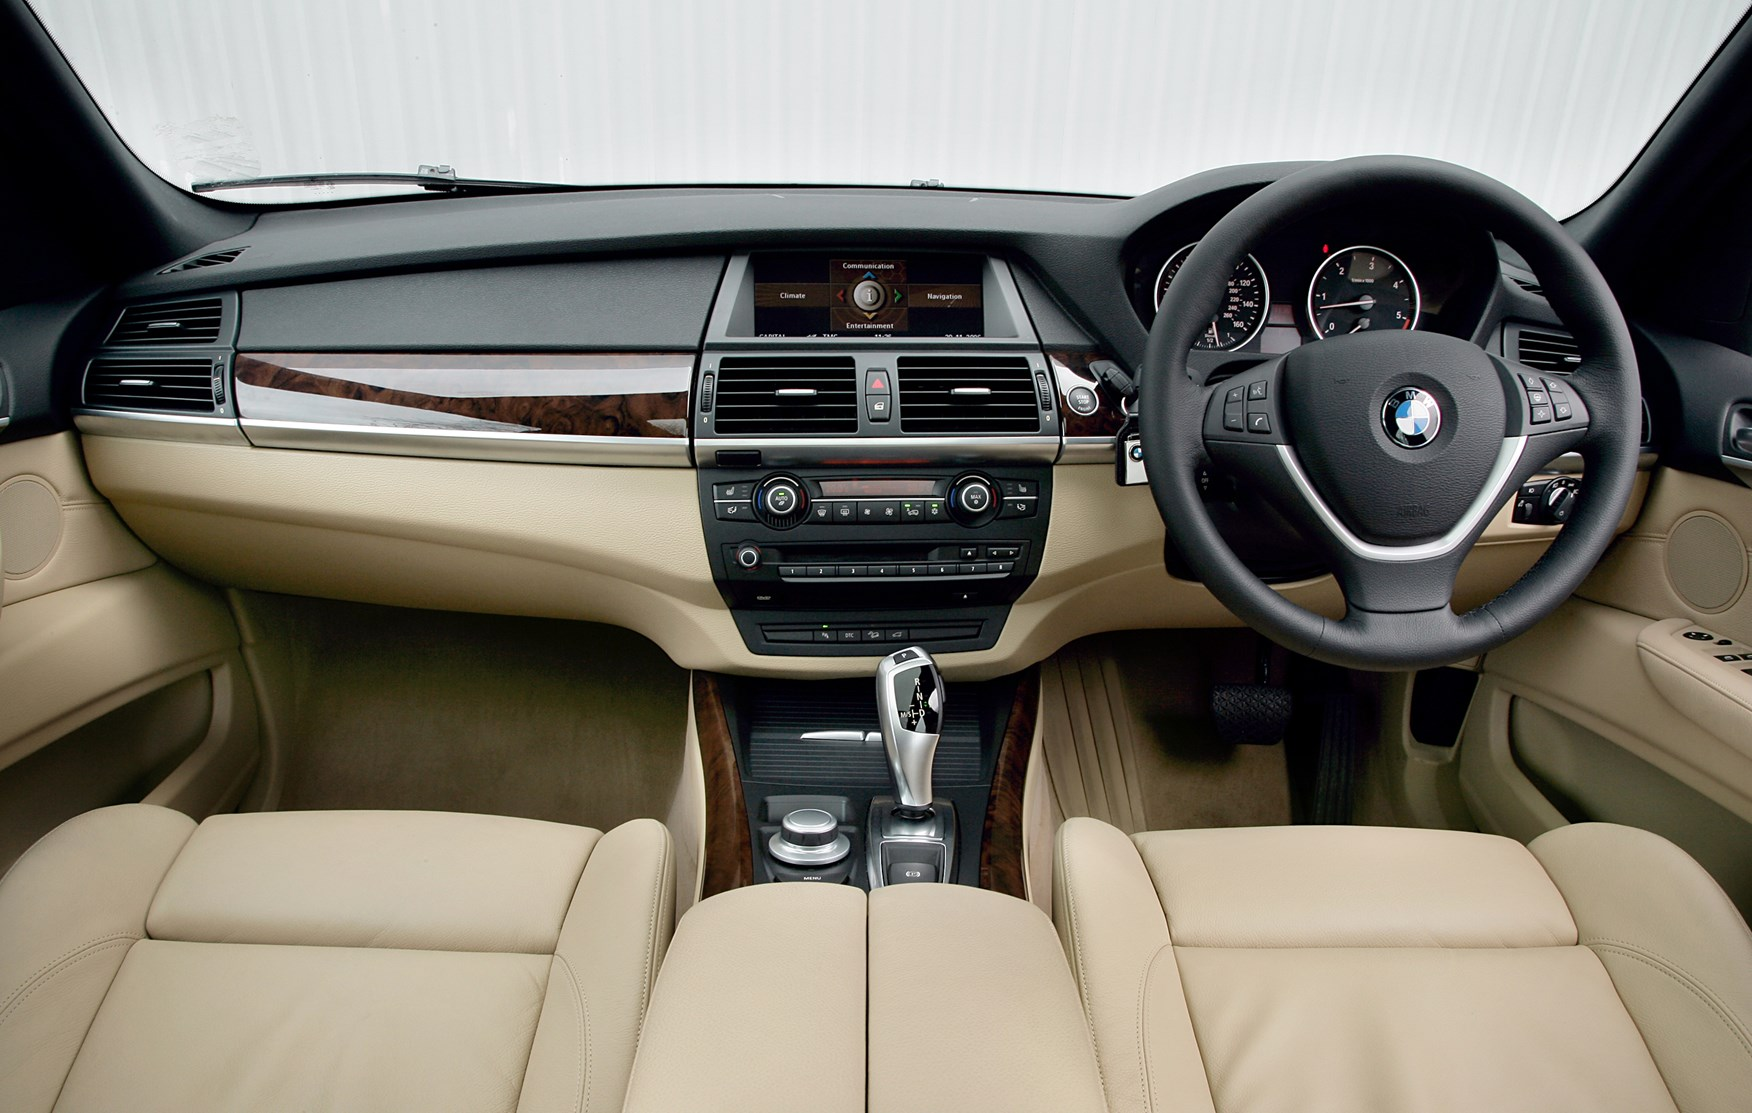 Used Bmw X5 Estate 2007 2013 Review Parkers